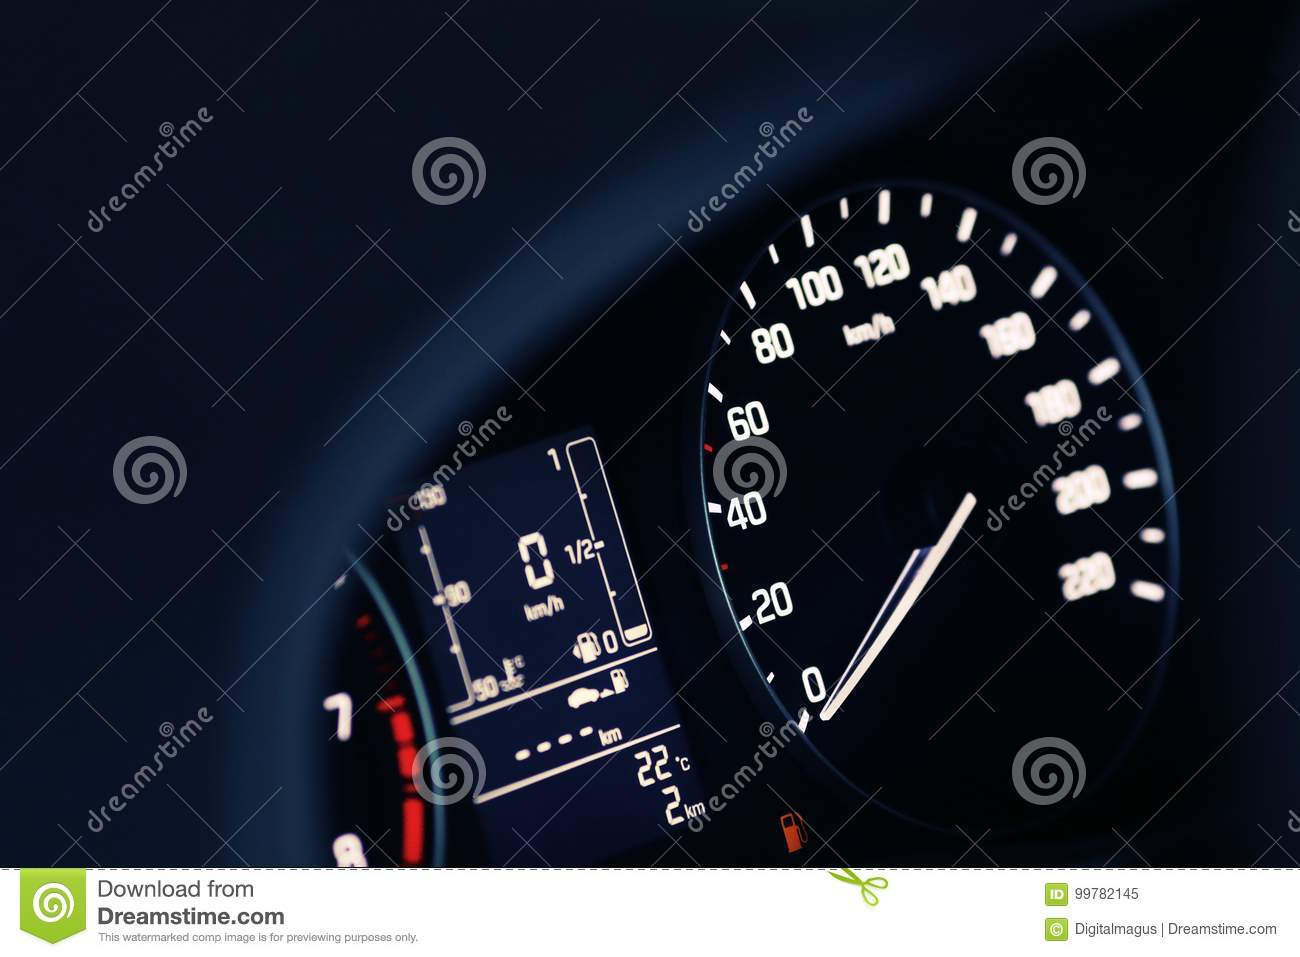 Empty Tank Indicator On Car Dashboard Stock Image - Image of dial